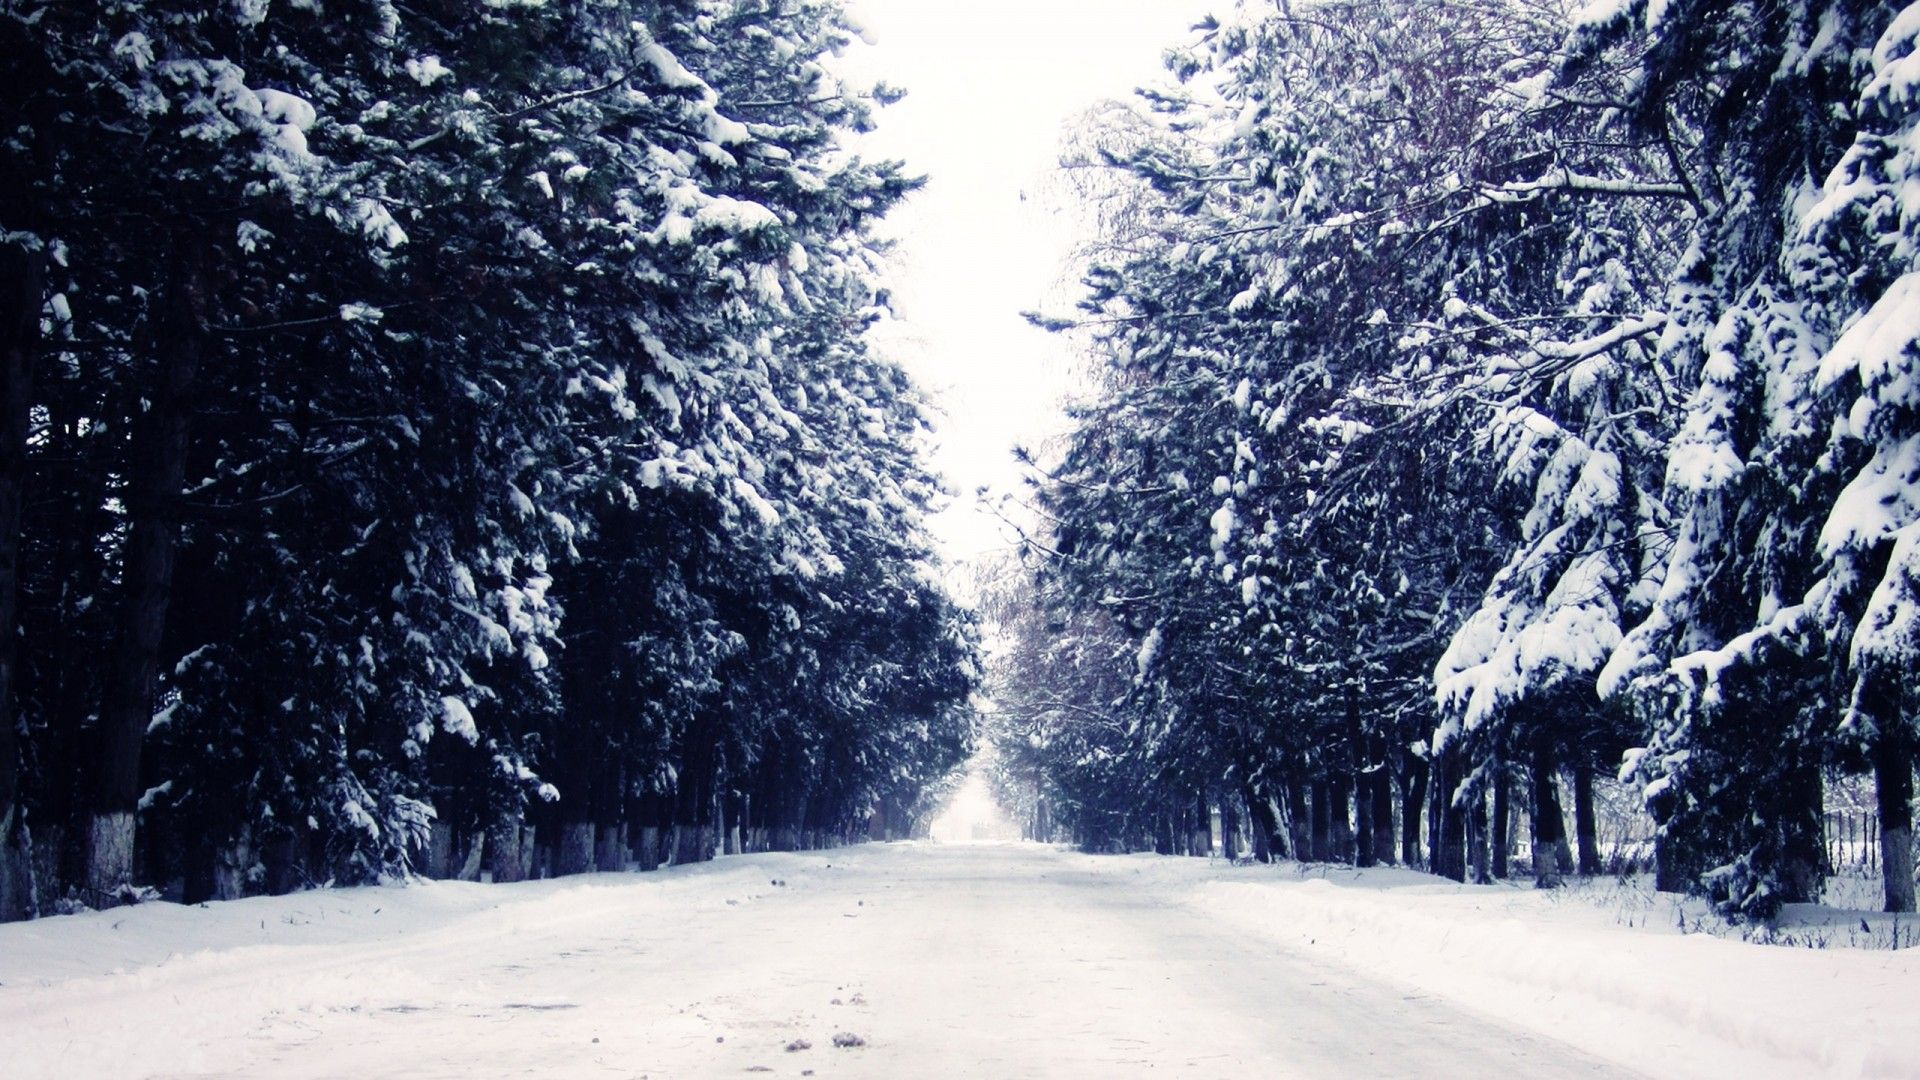 1080P Snow Wallpapers - Top Free 1080P Snow Backgrounds ...